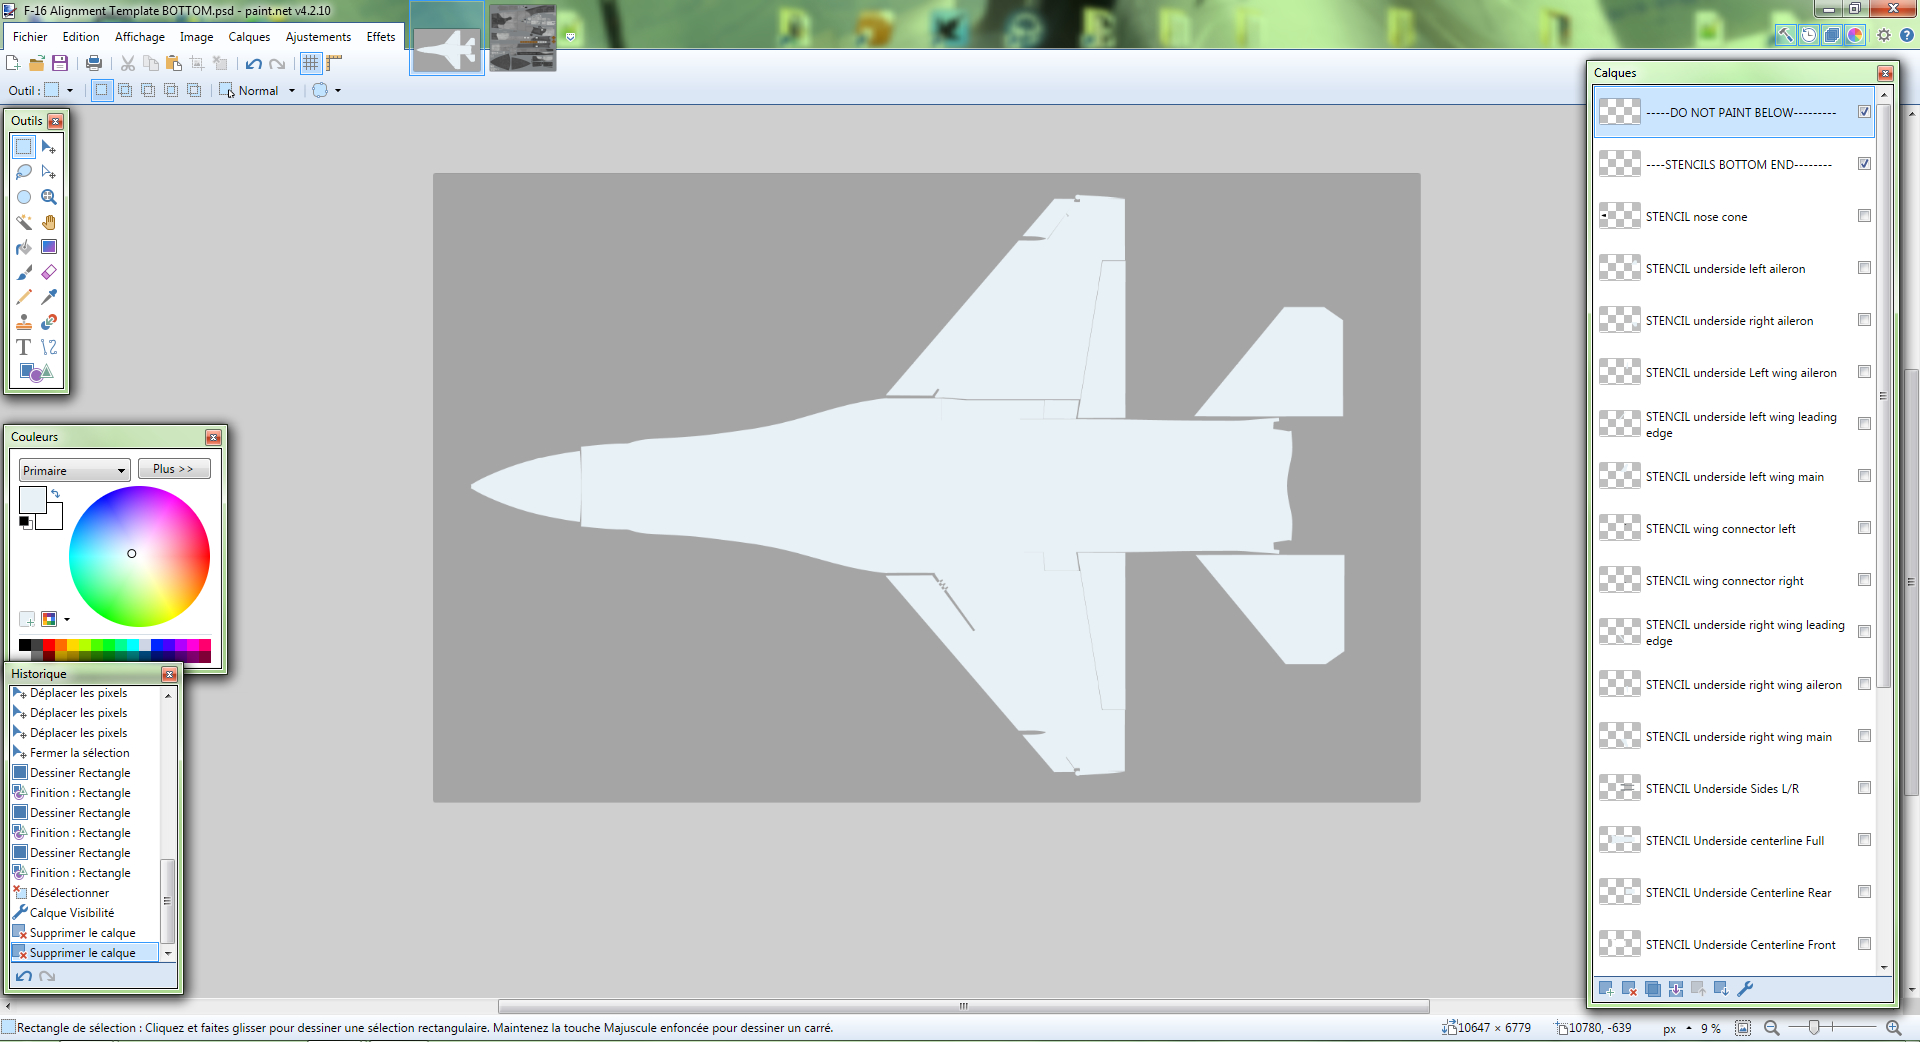 F-16C Alignment Templates